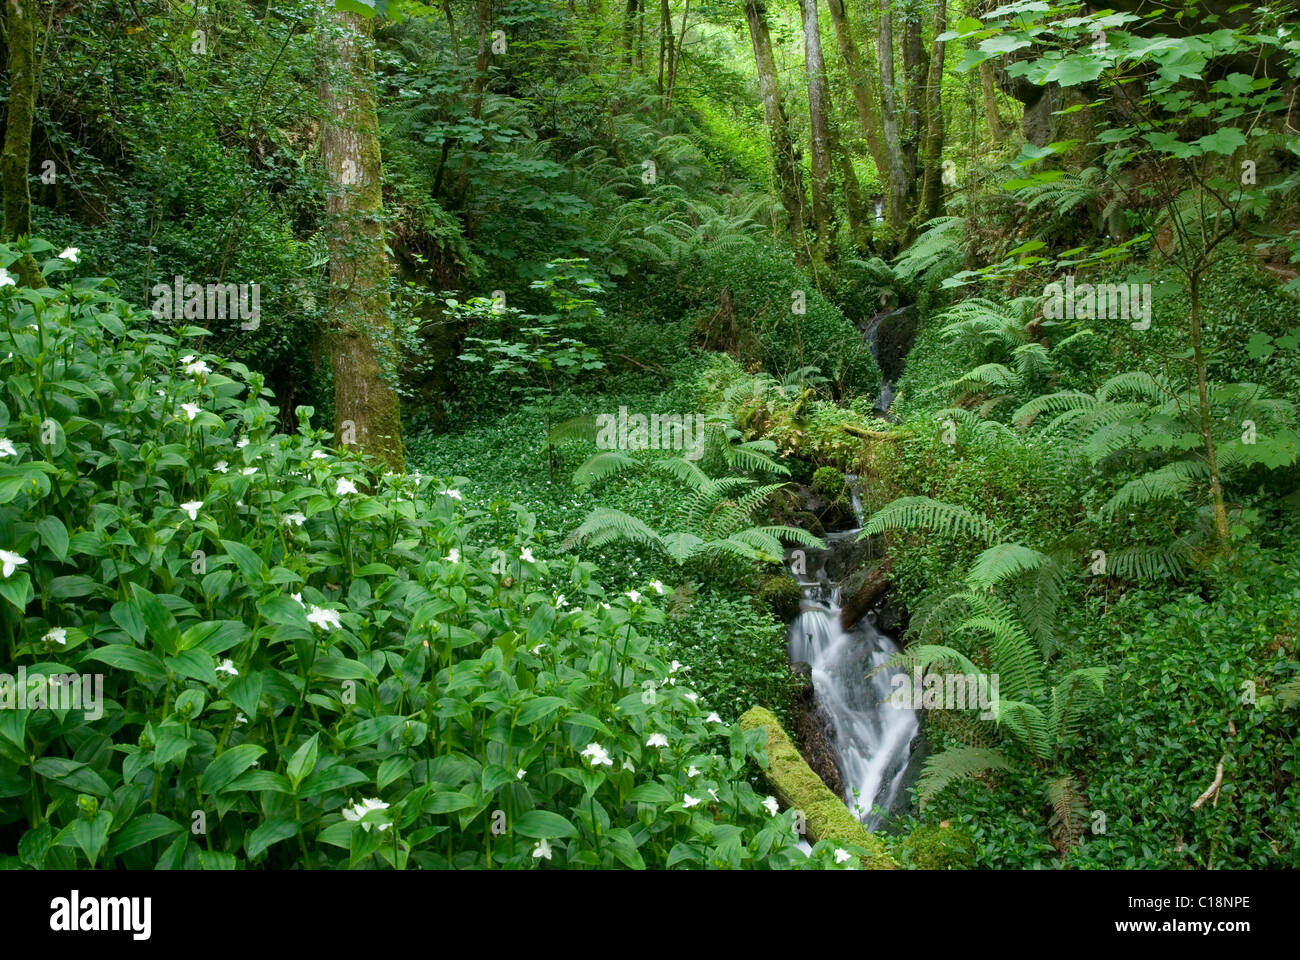 deciduous and temperate evergreen forest